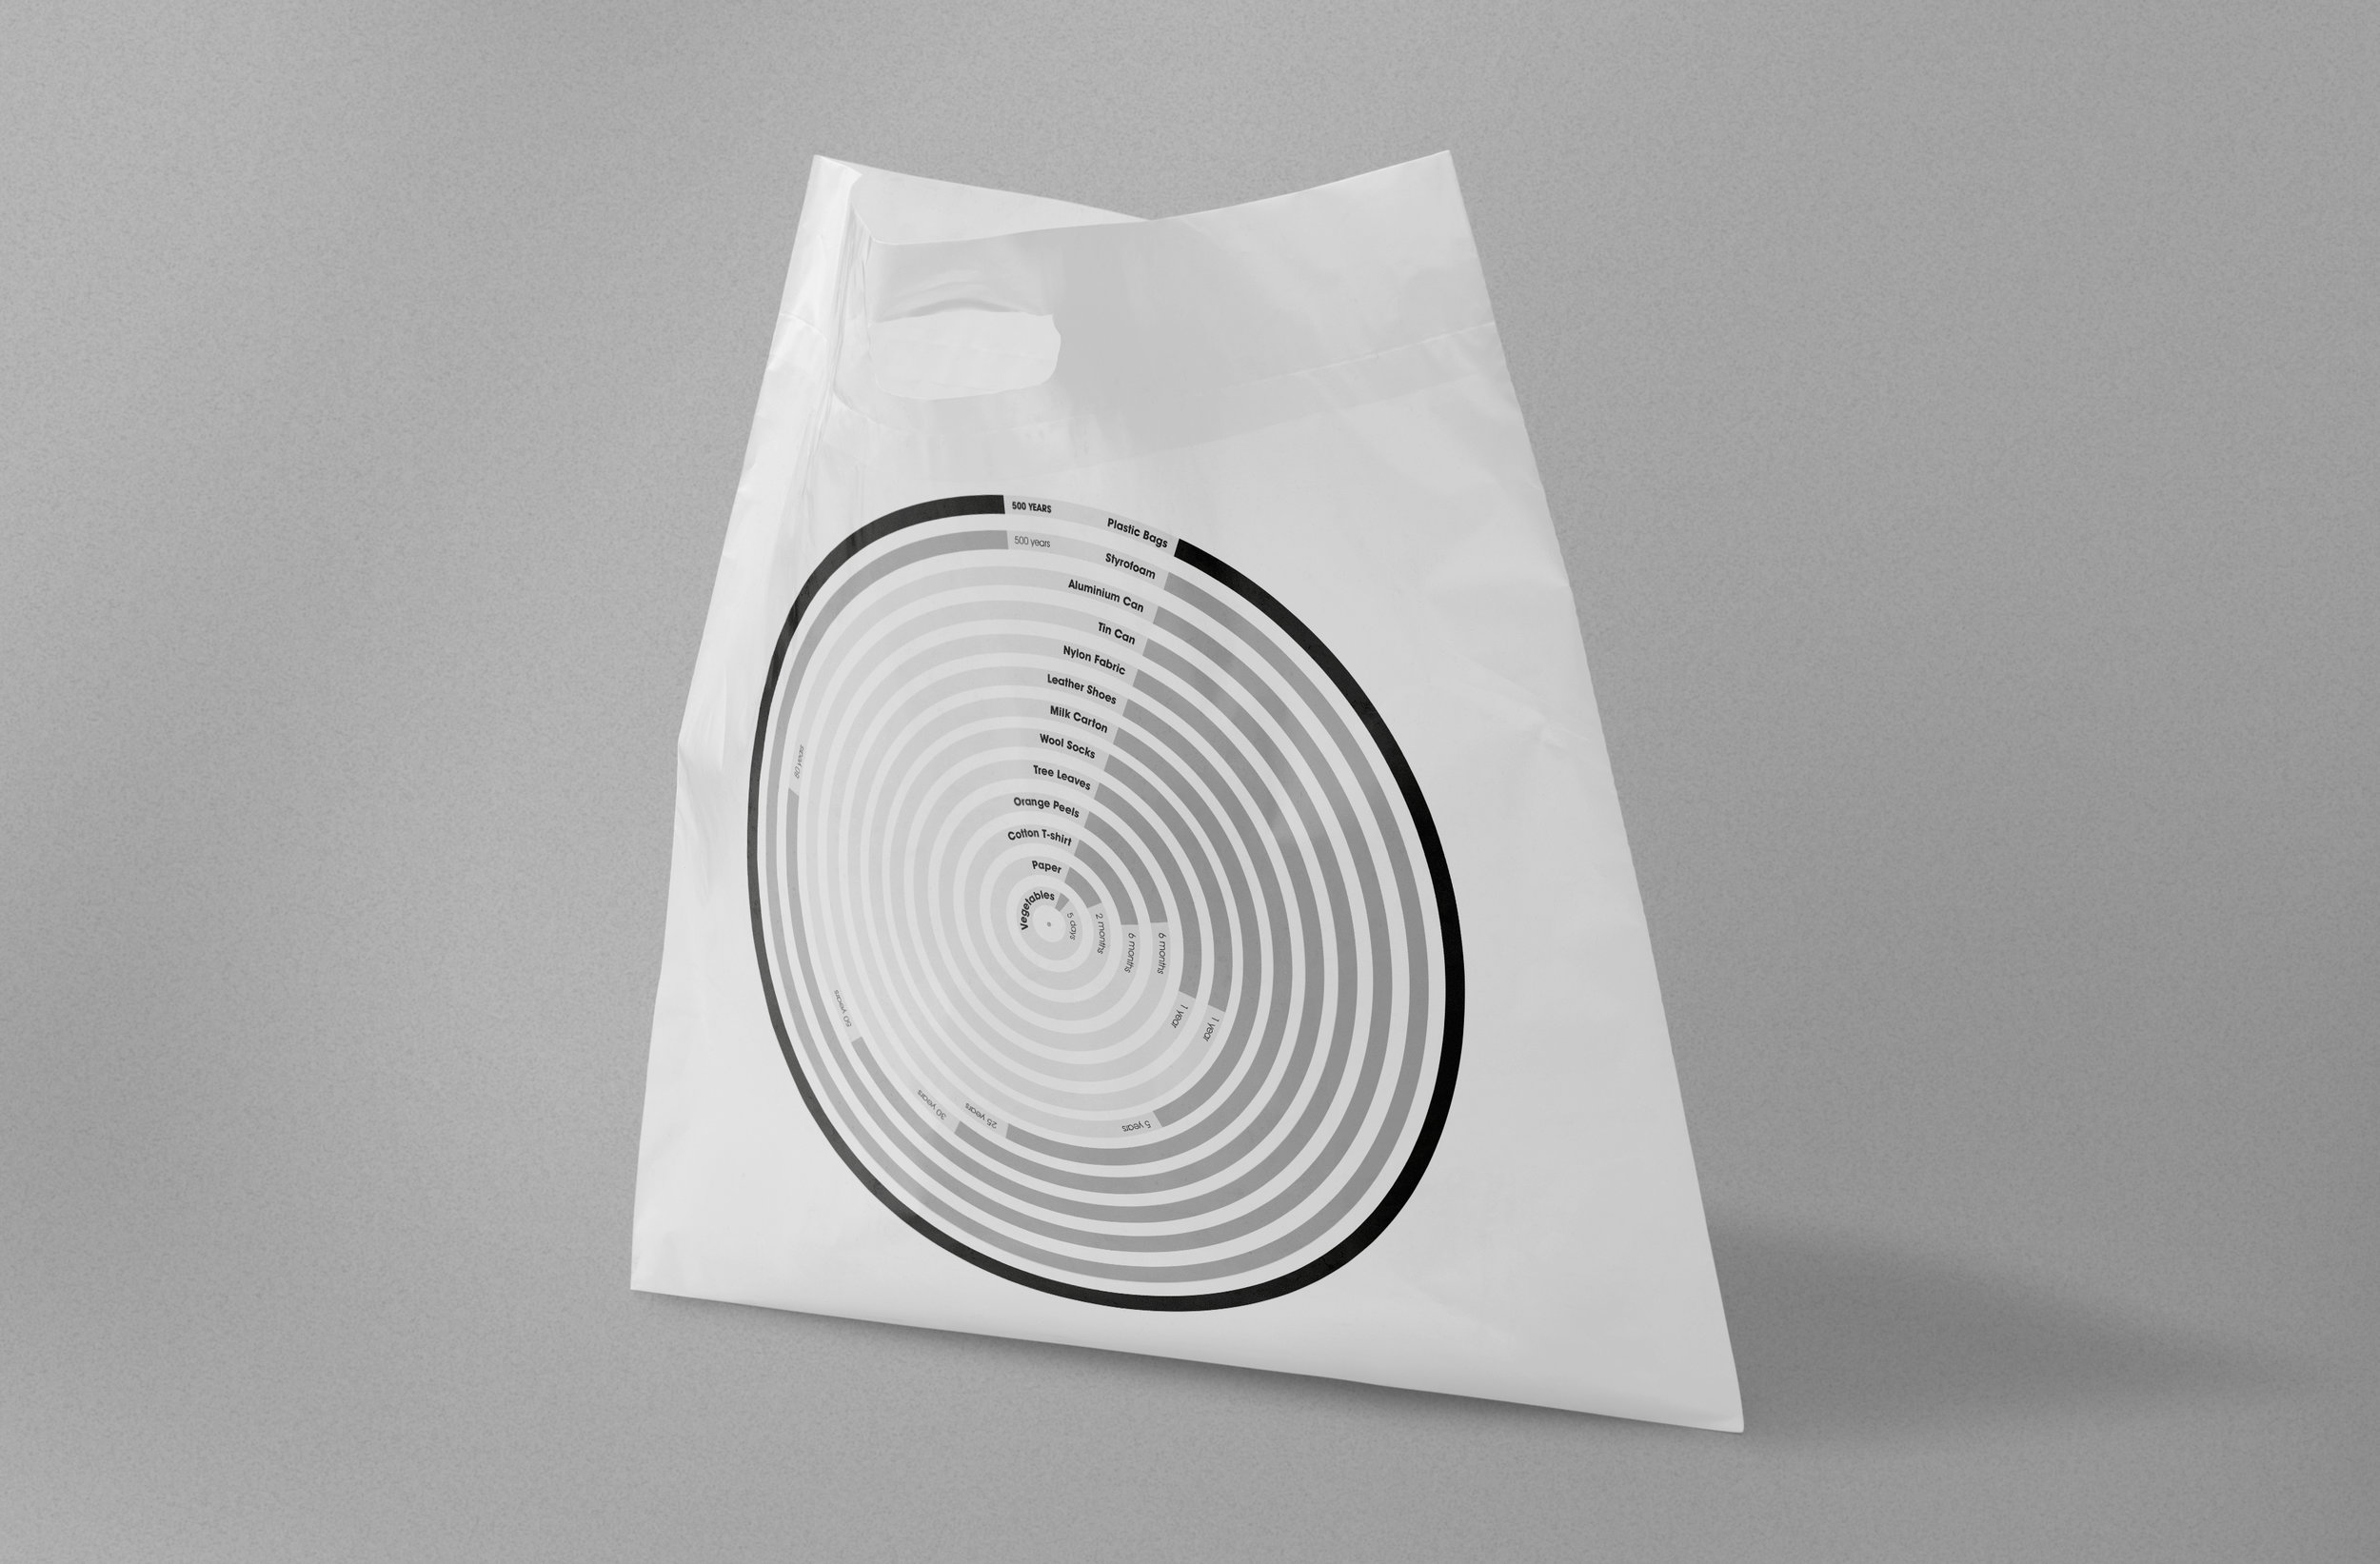 76-shopping-bag-mockup.jpg